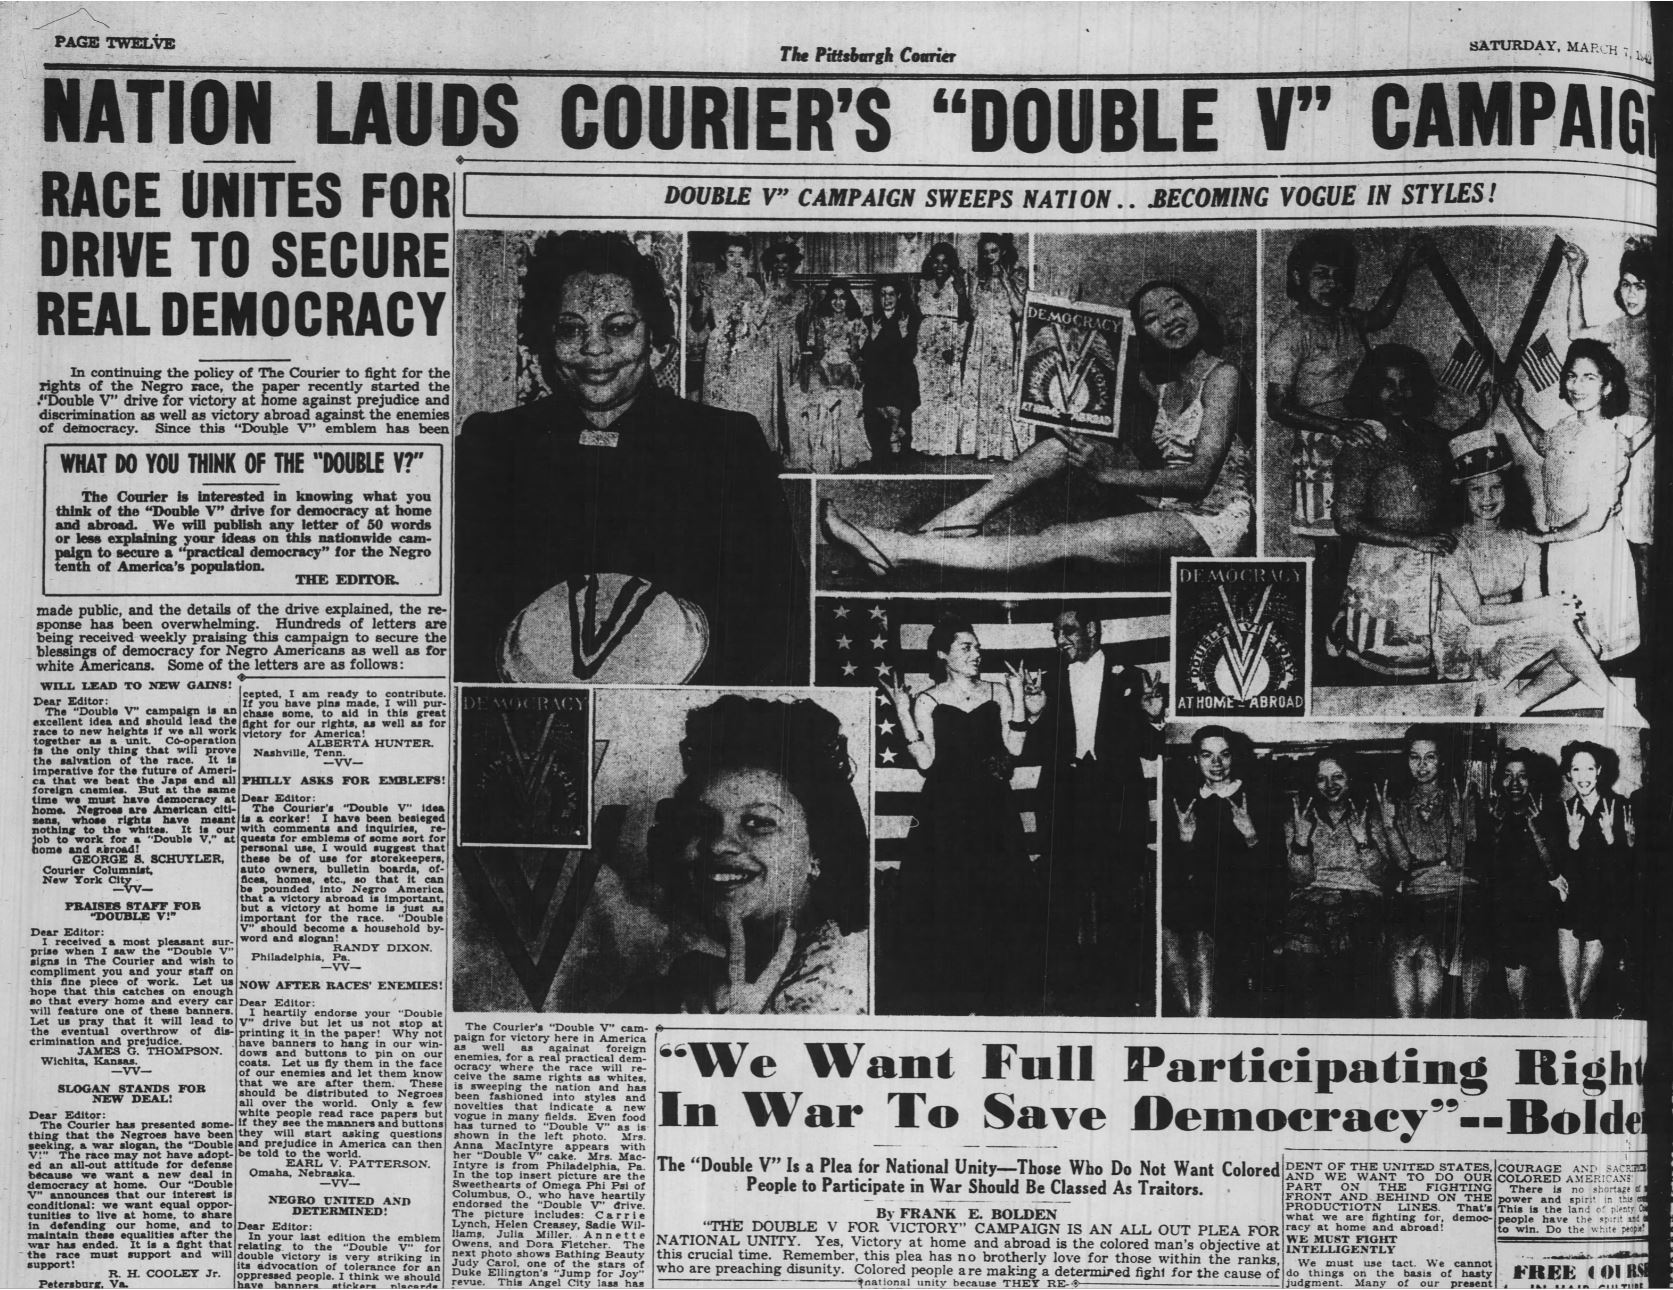 Newspaper with Double V Campaign news (Pittsburgh Courier, via Newspapers.com)